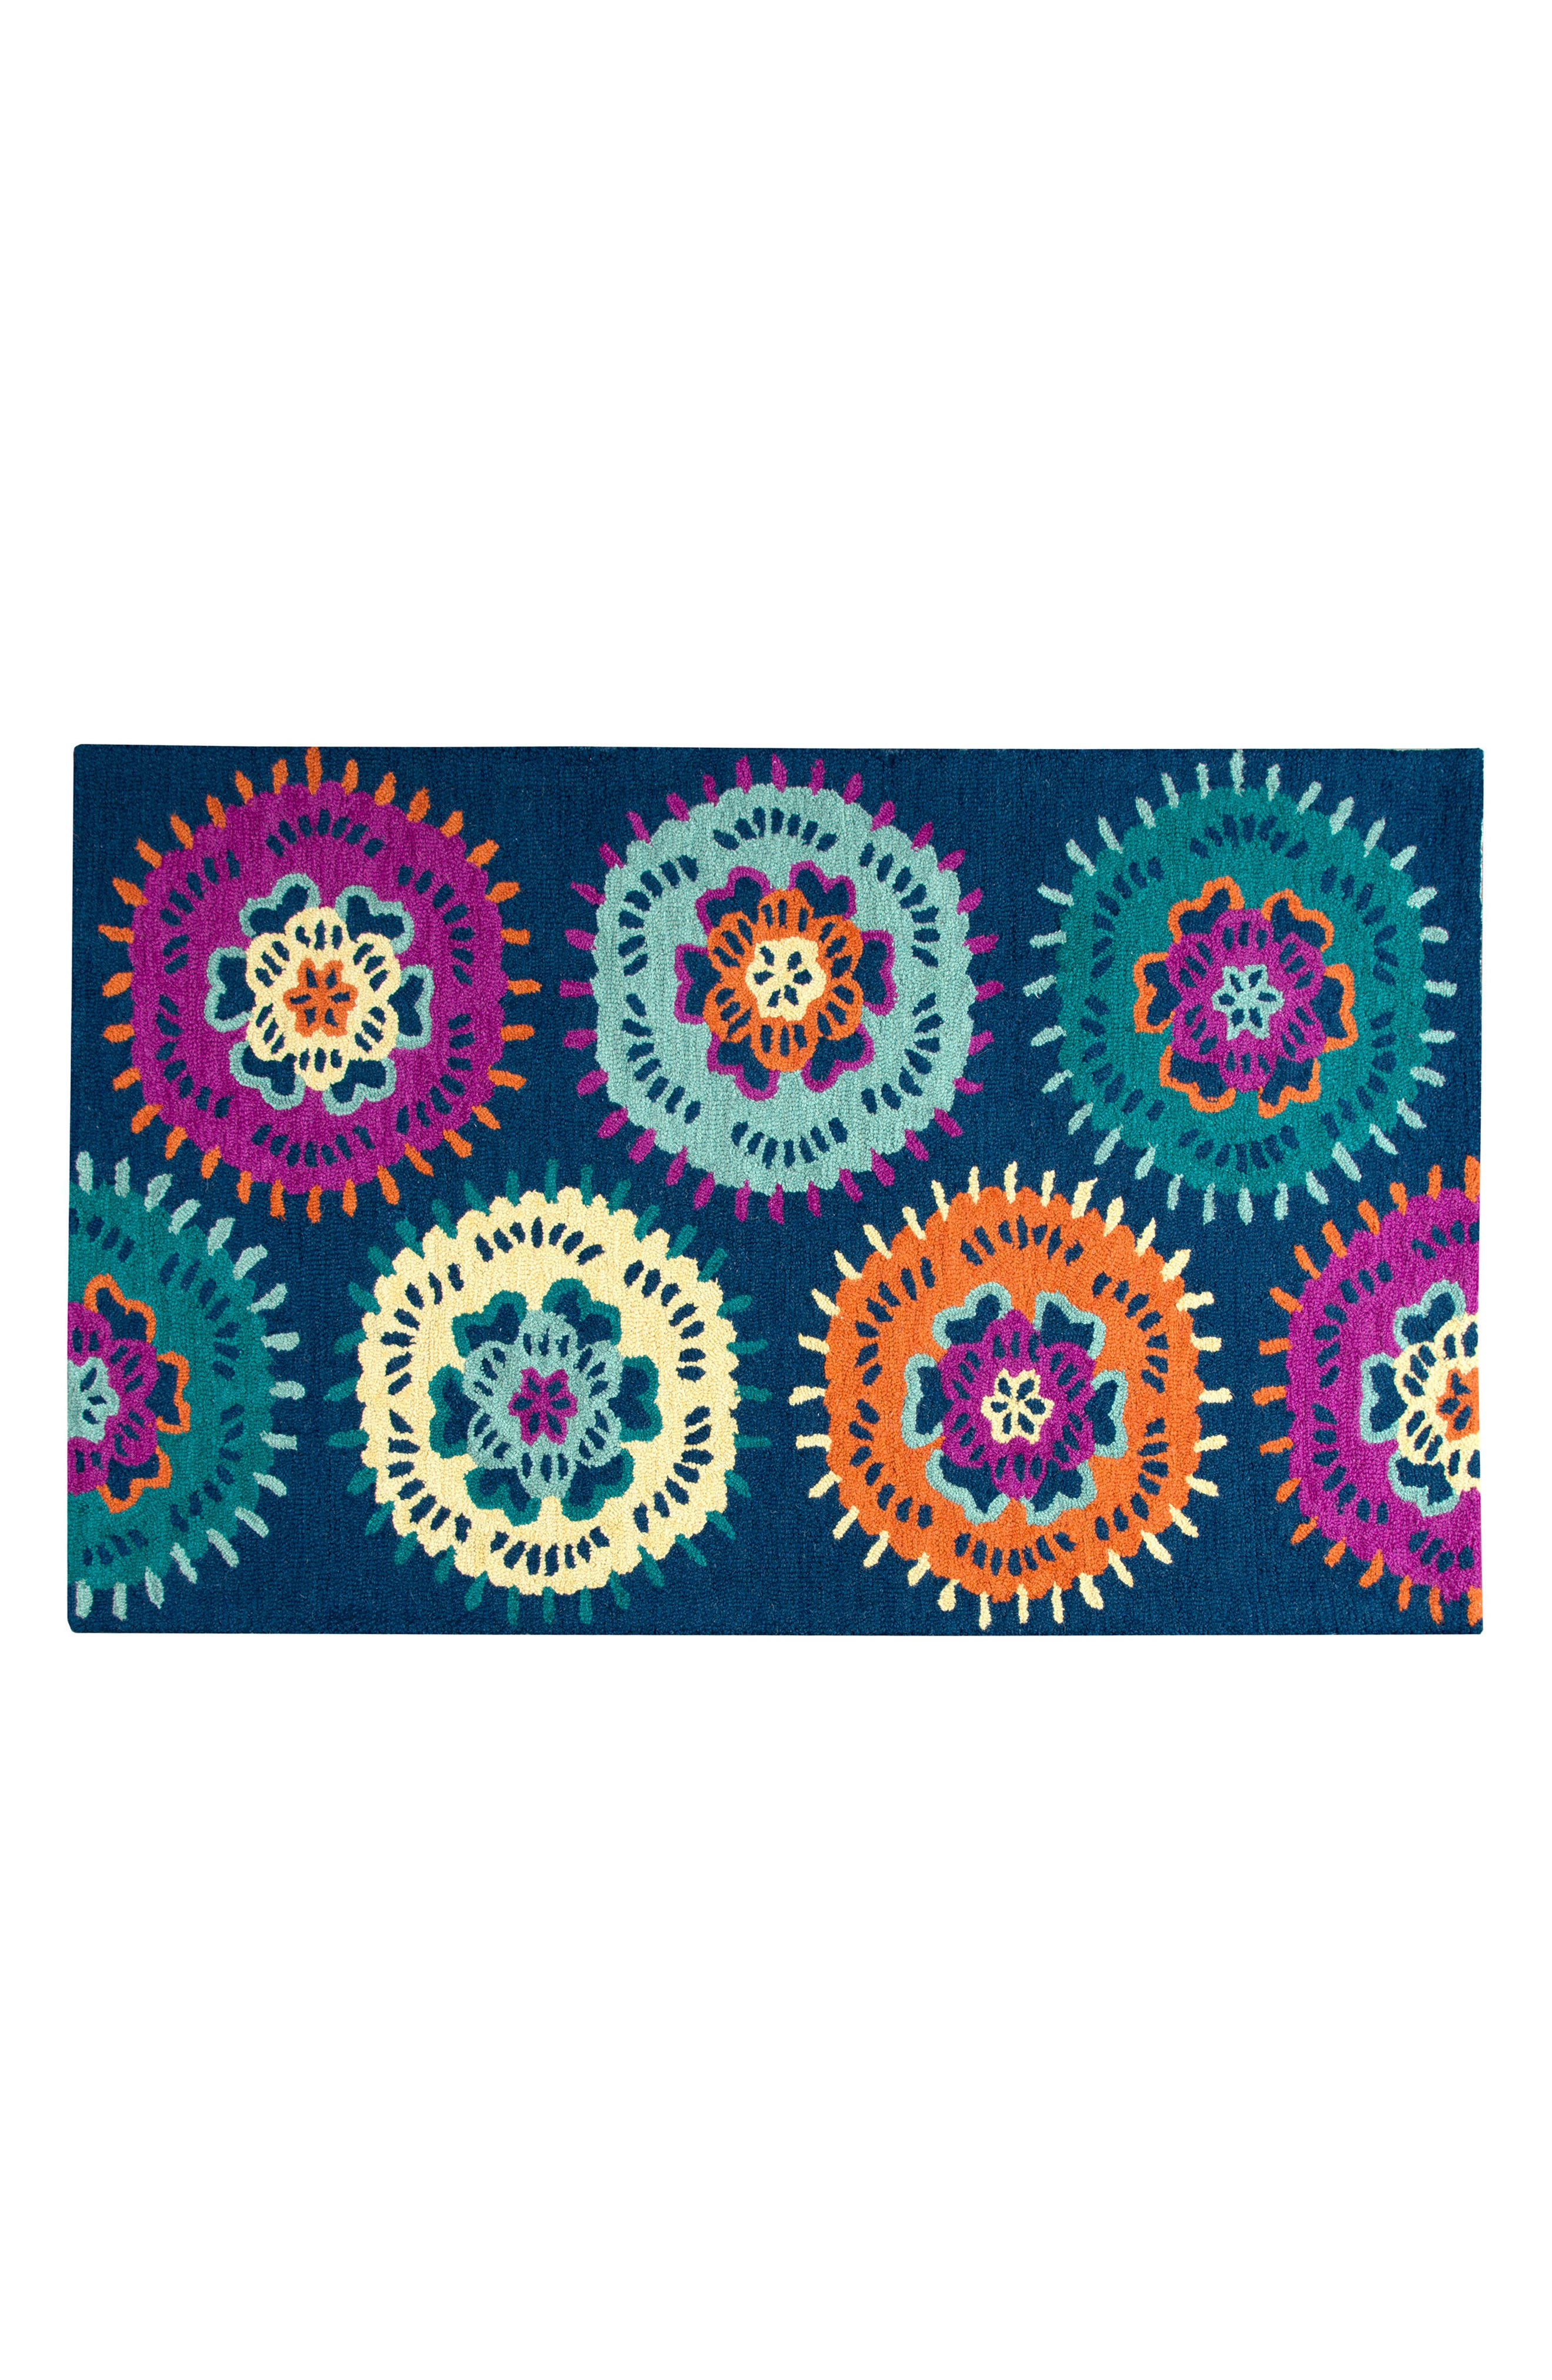 Play Day Flowery Rug,                             Main thumbnail 1, color,                             Navy